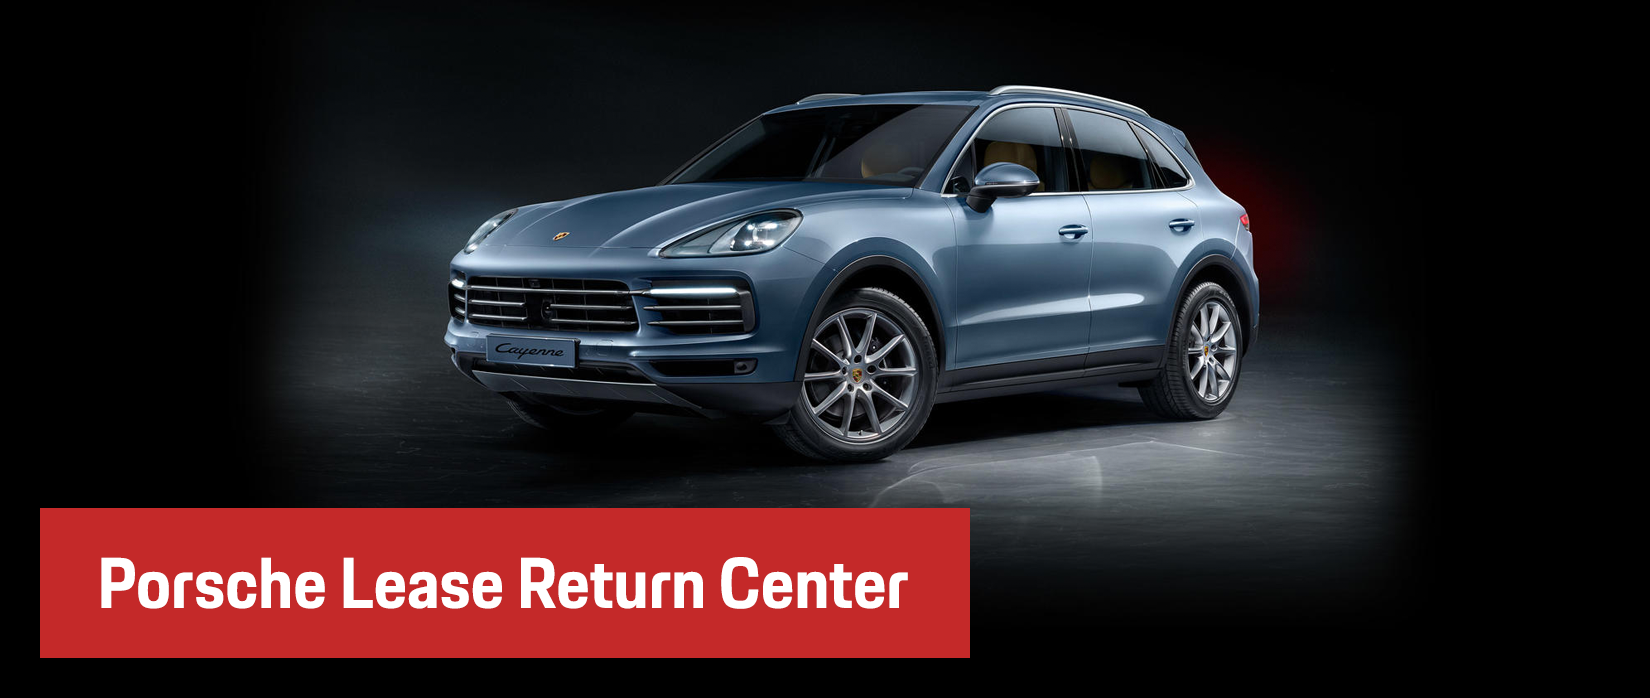 Porsche Lease Return Center